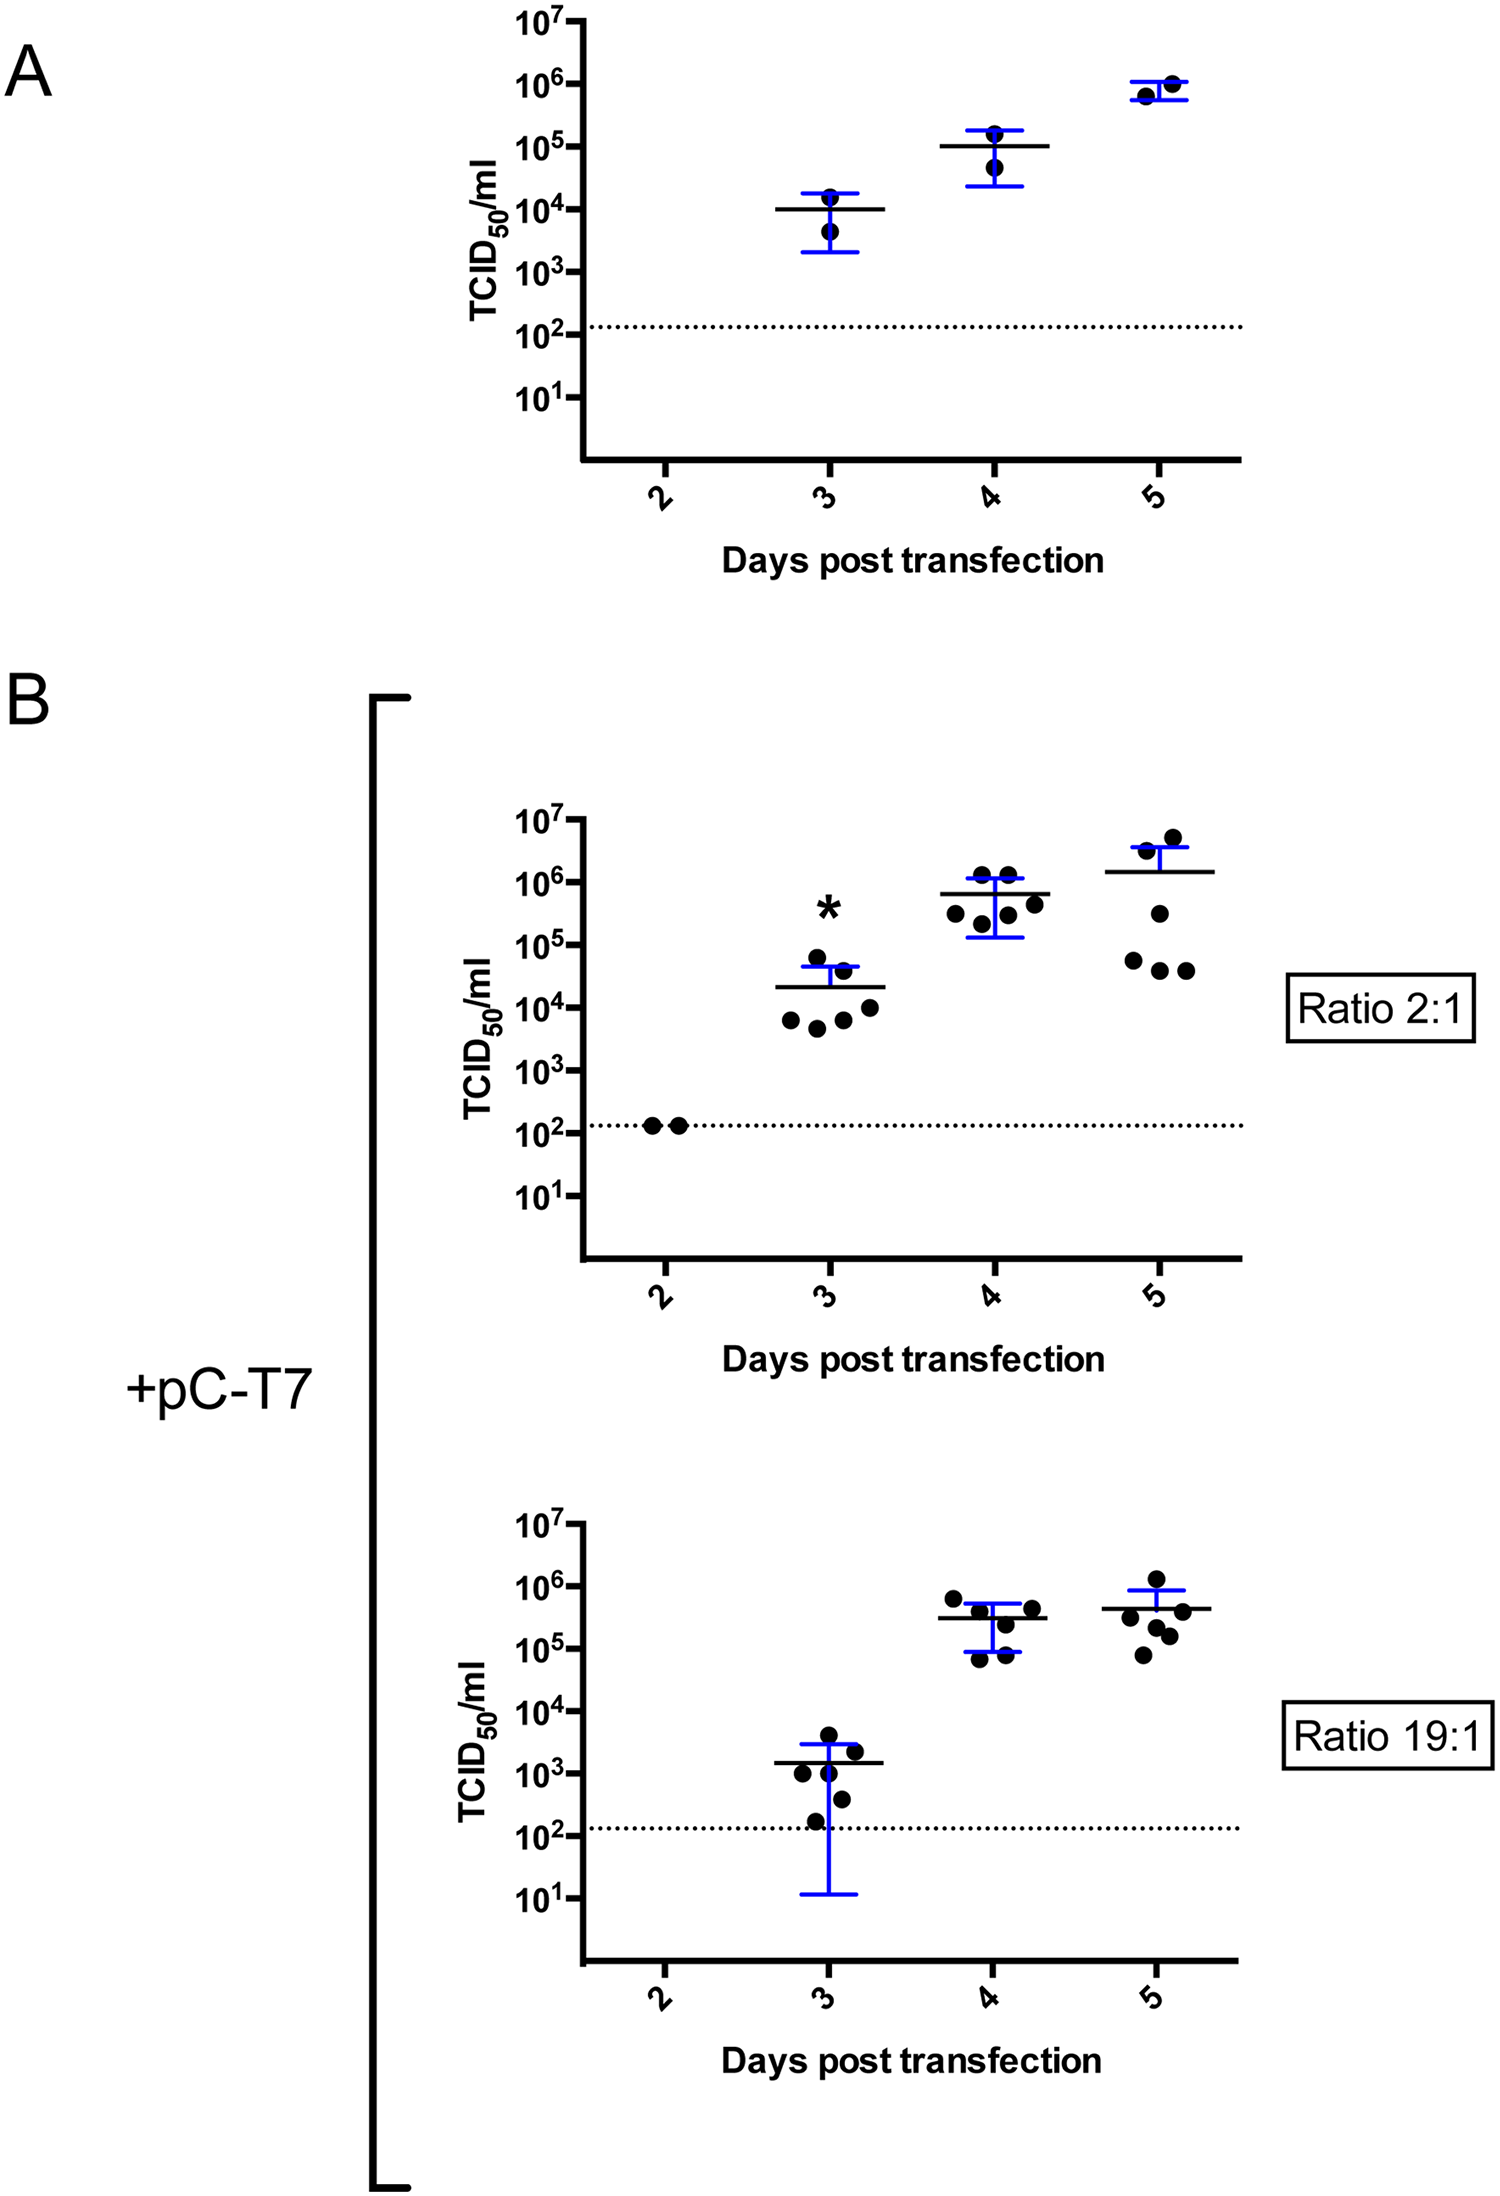 Optimization of support plasmid ratios for CCHFV rescue in BSR-T7/5.